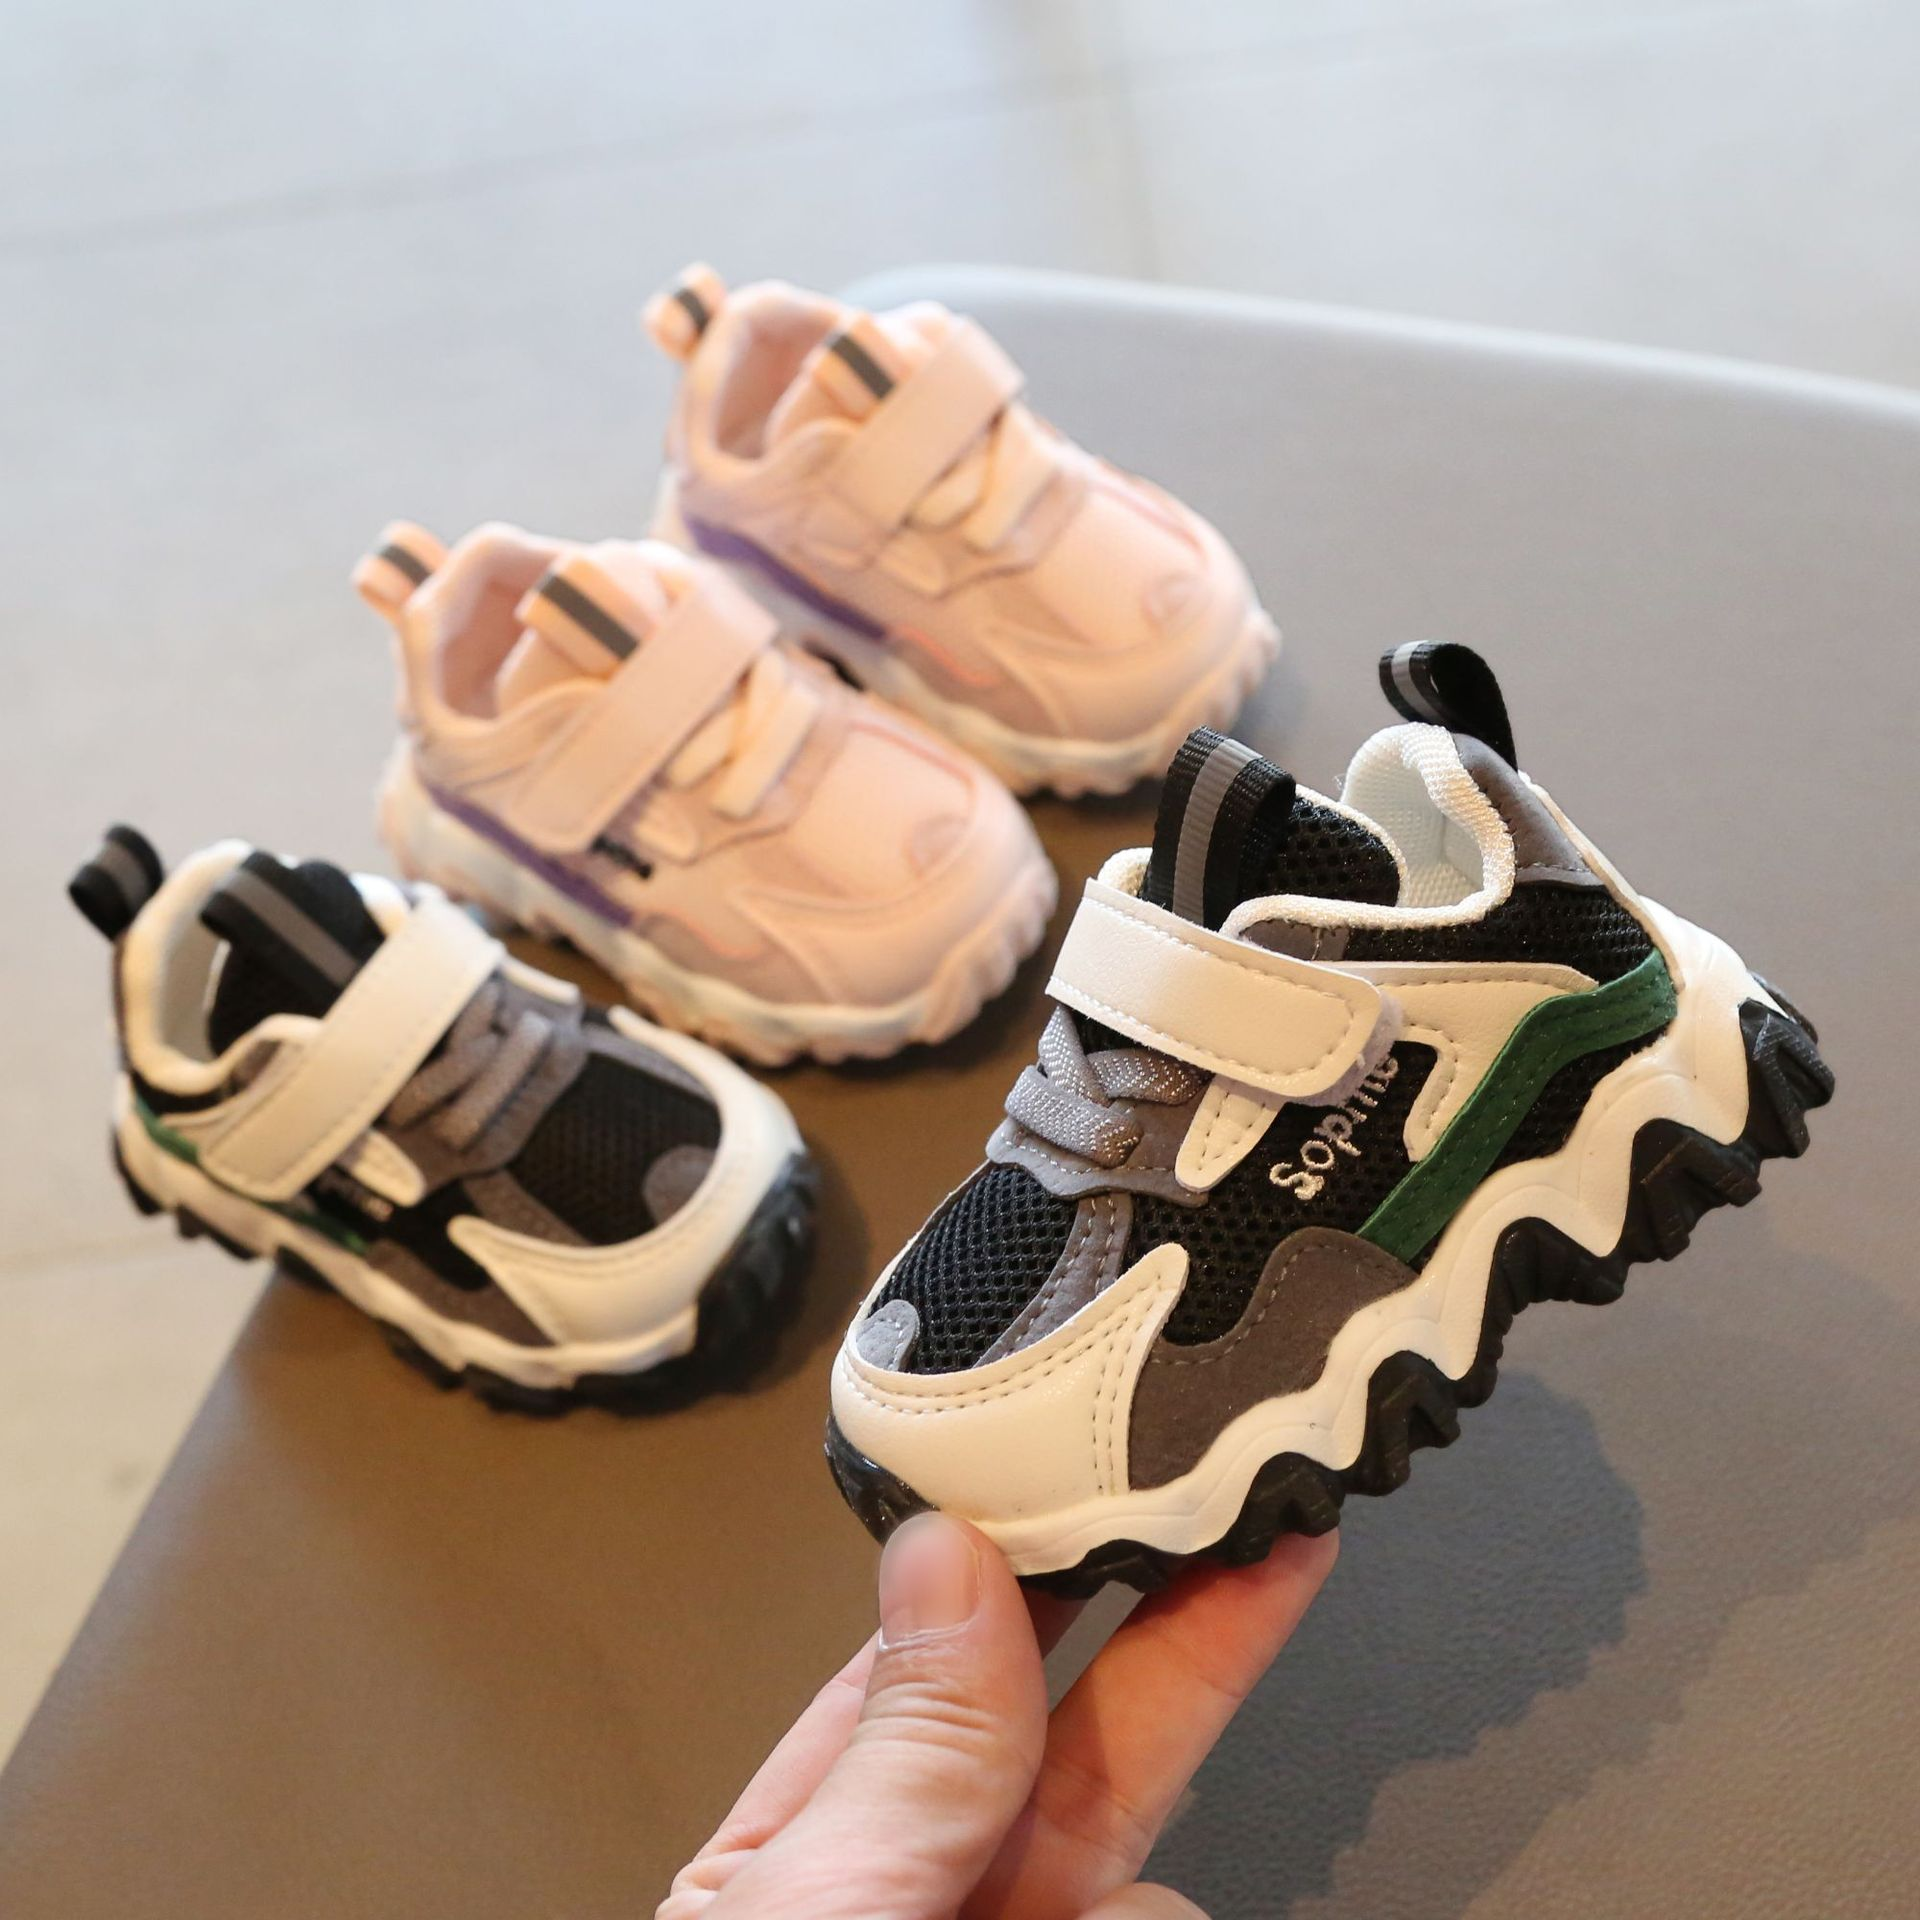 2020 New Baby Boy Sport Shoes Breathable Baby Girls Sneakers Infant Toddler First Walkers Children's Tennis Shoes Mesh